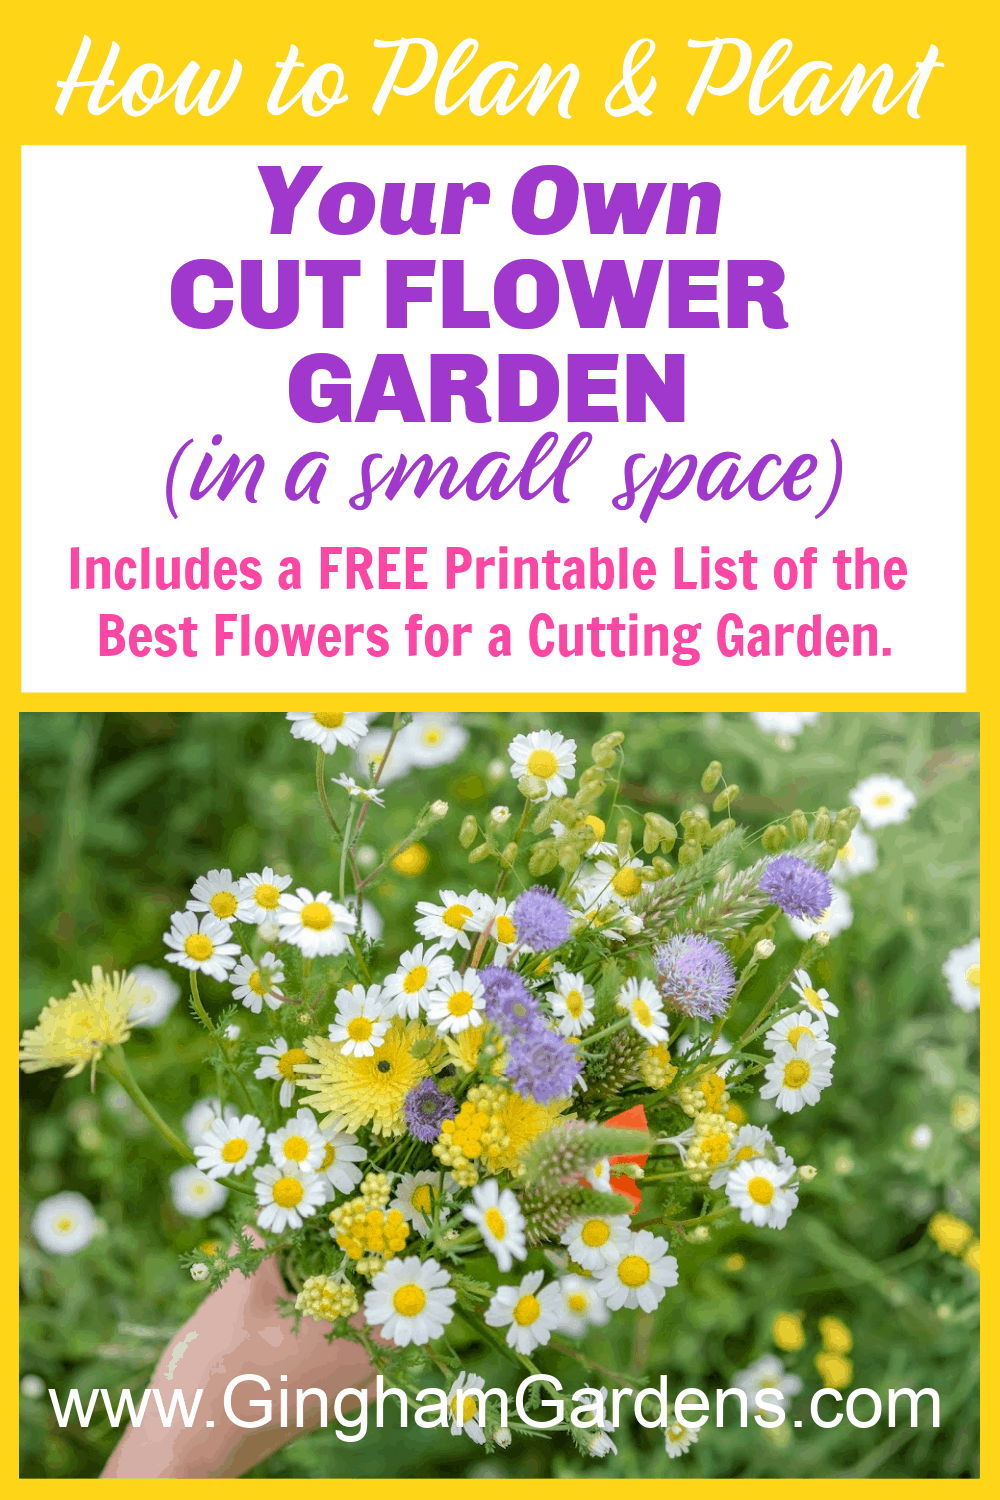 Image of Flowers with Text Overlay - How to Plan & Plant Your Own Cut Flower Garden